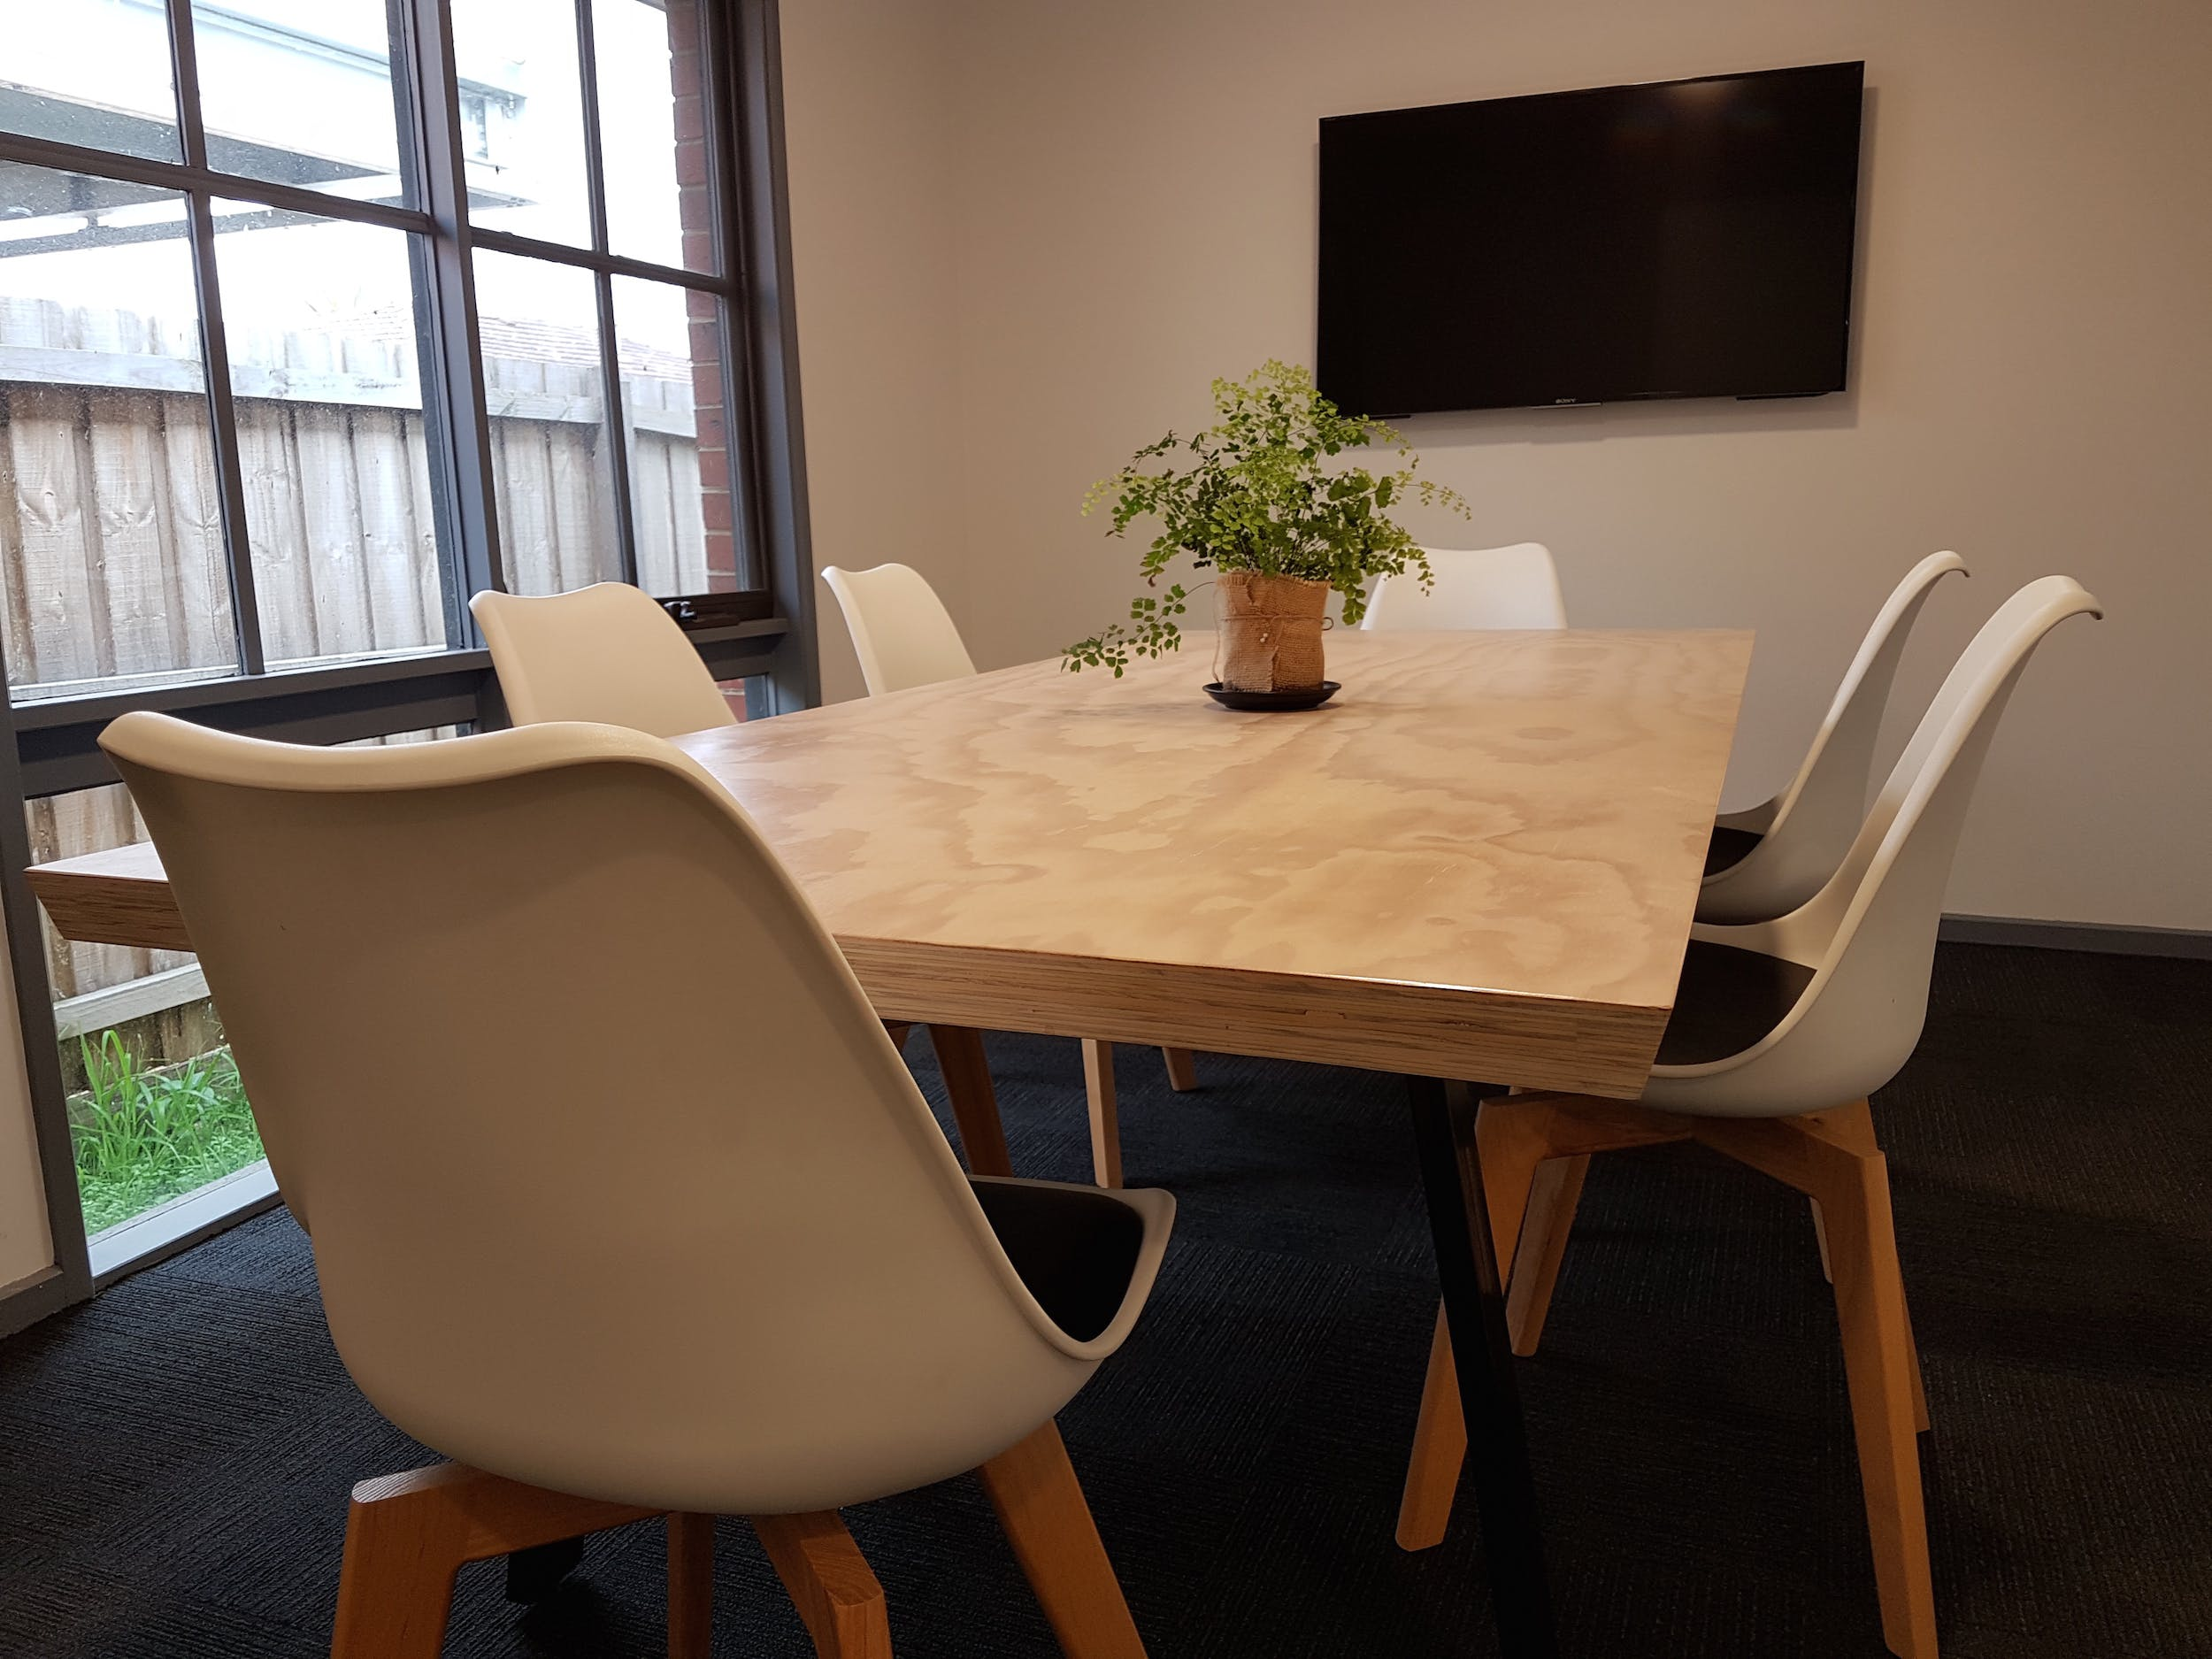 The Boardroom, meeting room at Happy Hubbub, image 1